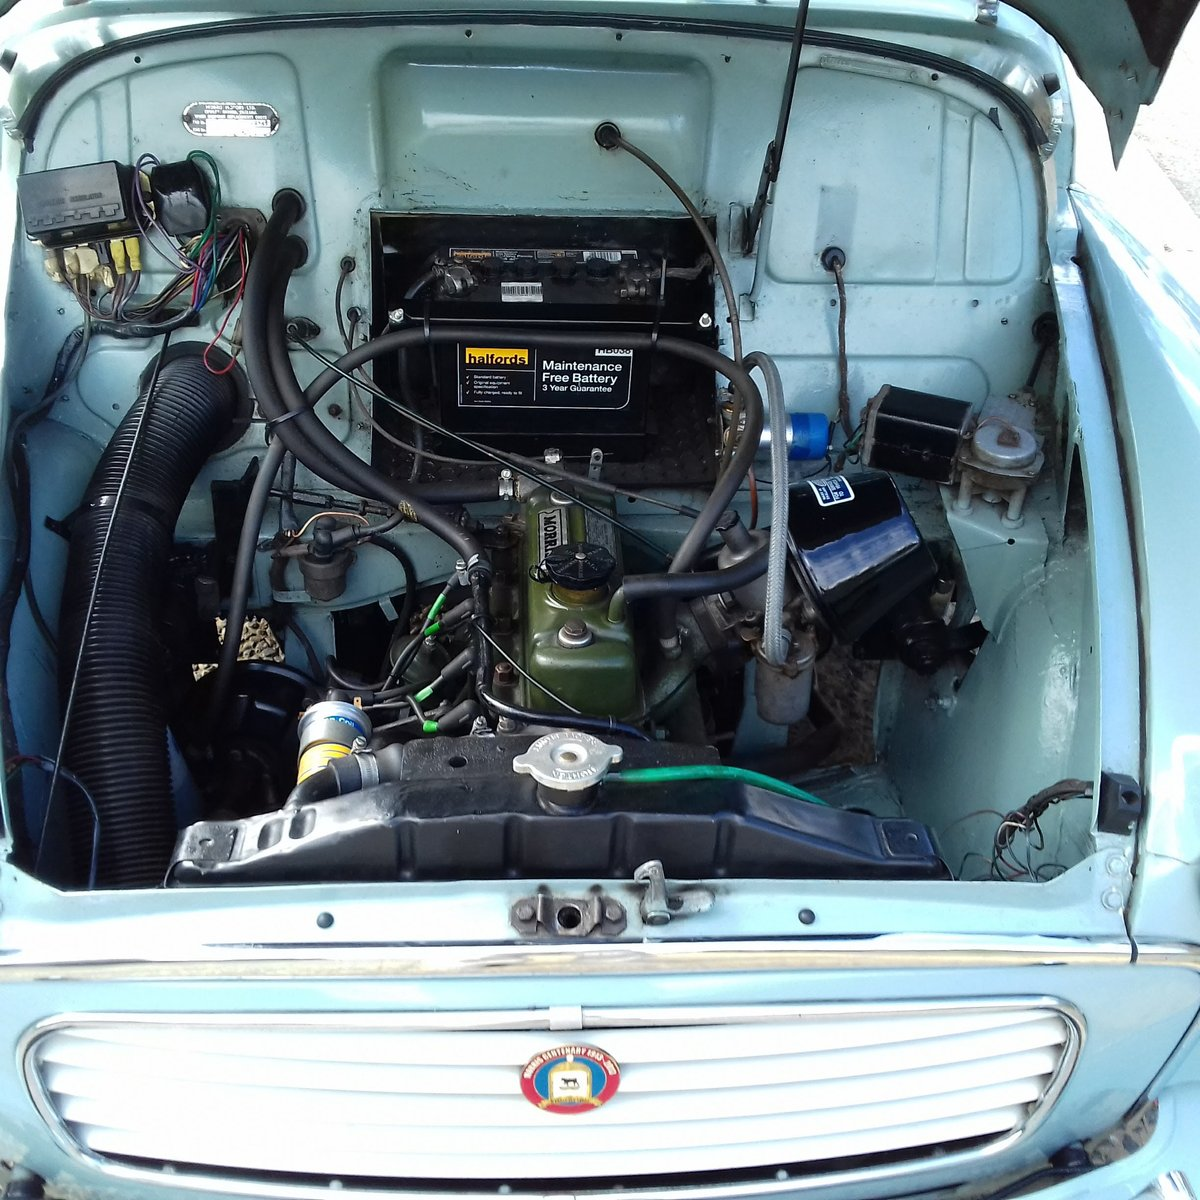 1966 Morris Minor 1000 Convertible For Sale (picture 4 of 6)